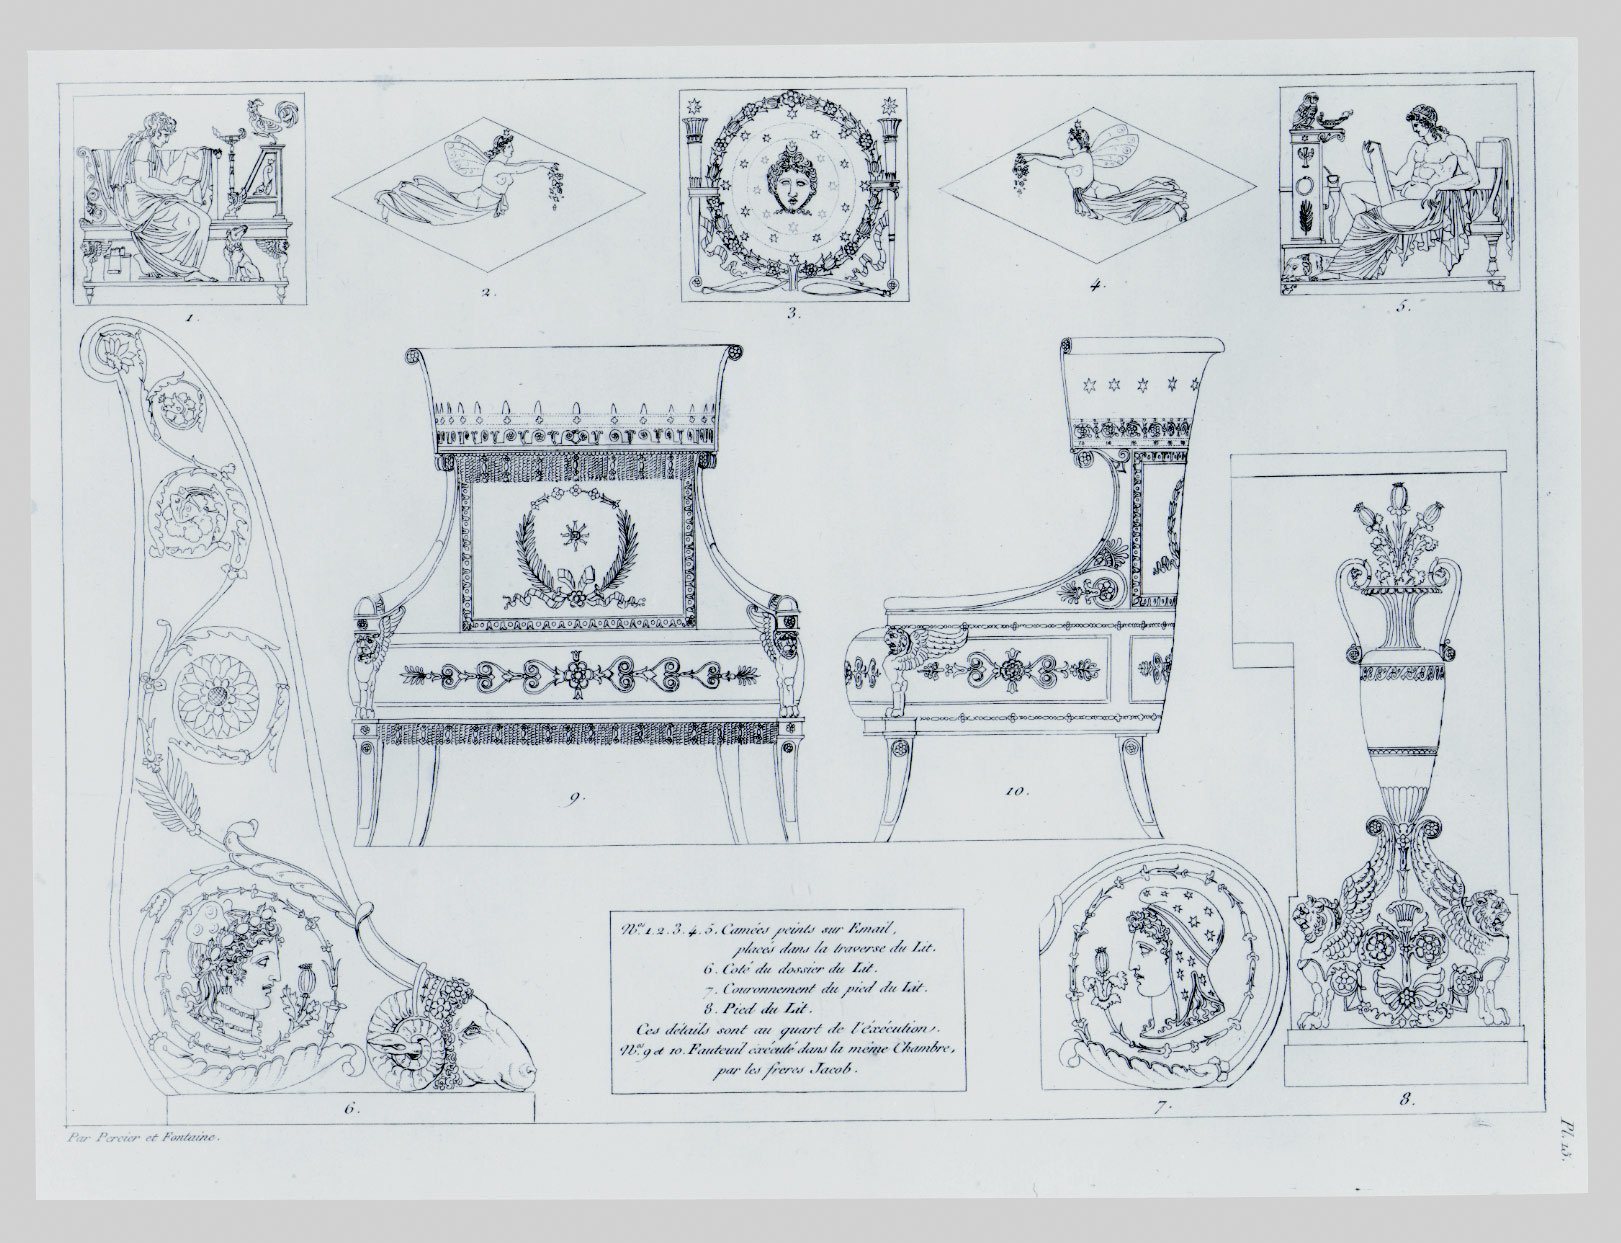 Design for the Scrolled End of a Bedstead: Plate 15 of Recueil de decorations interieures